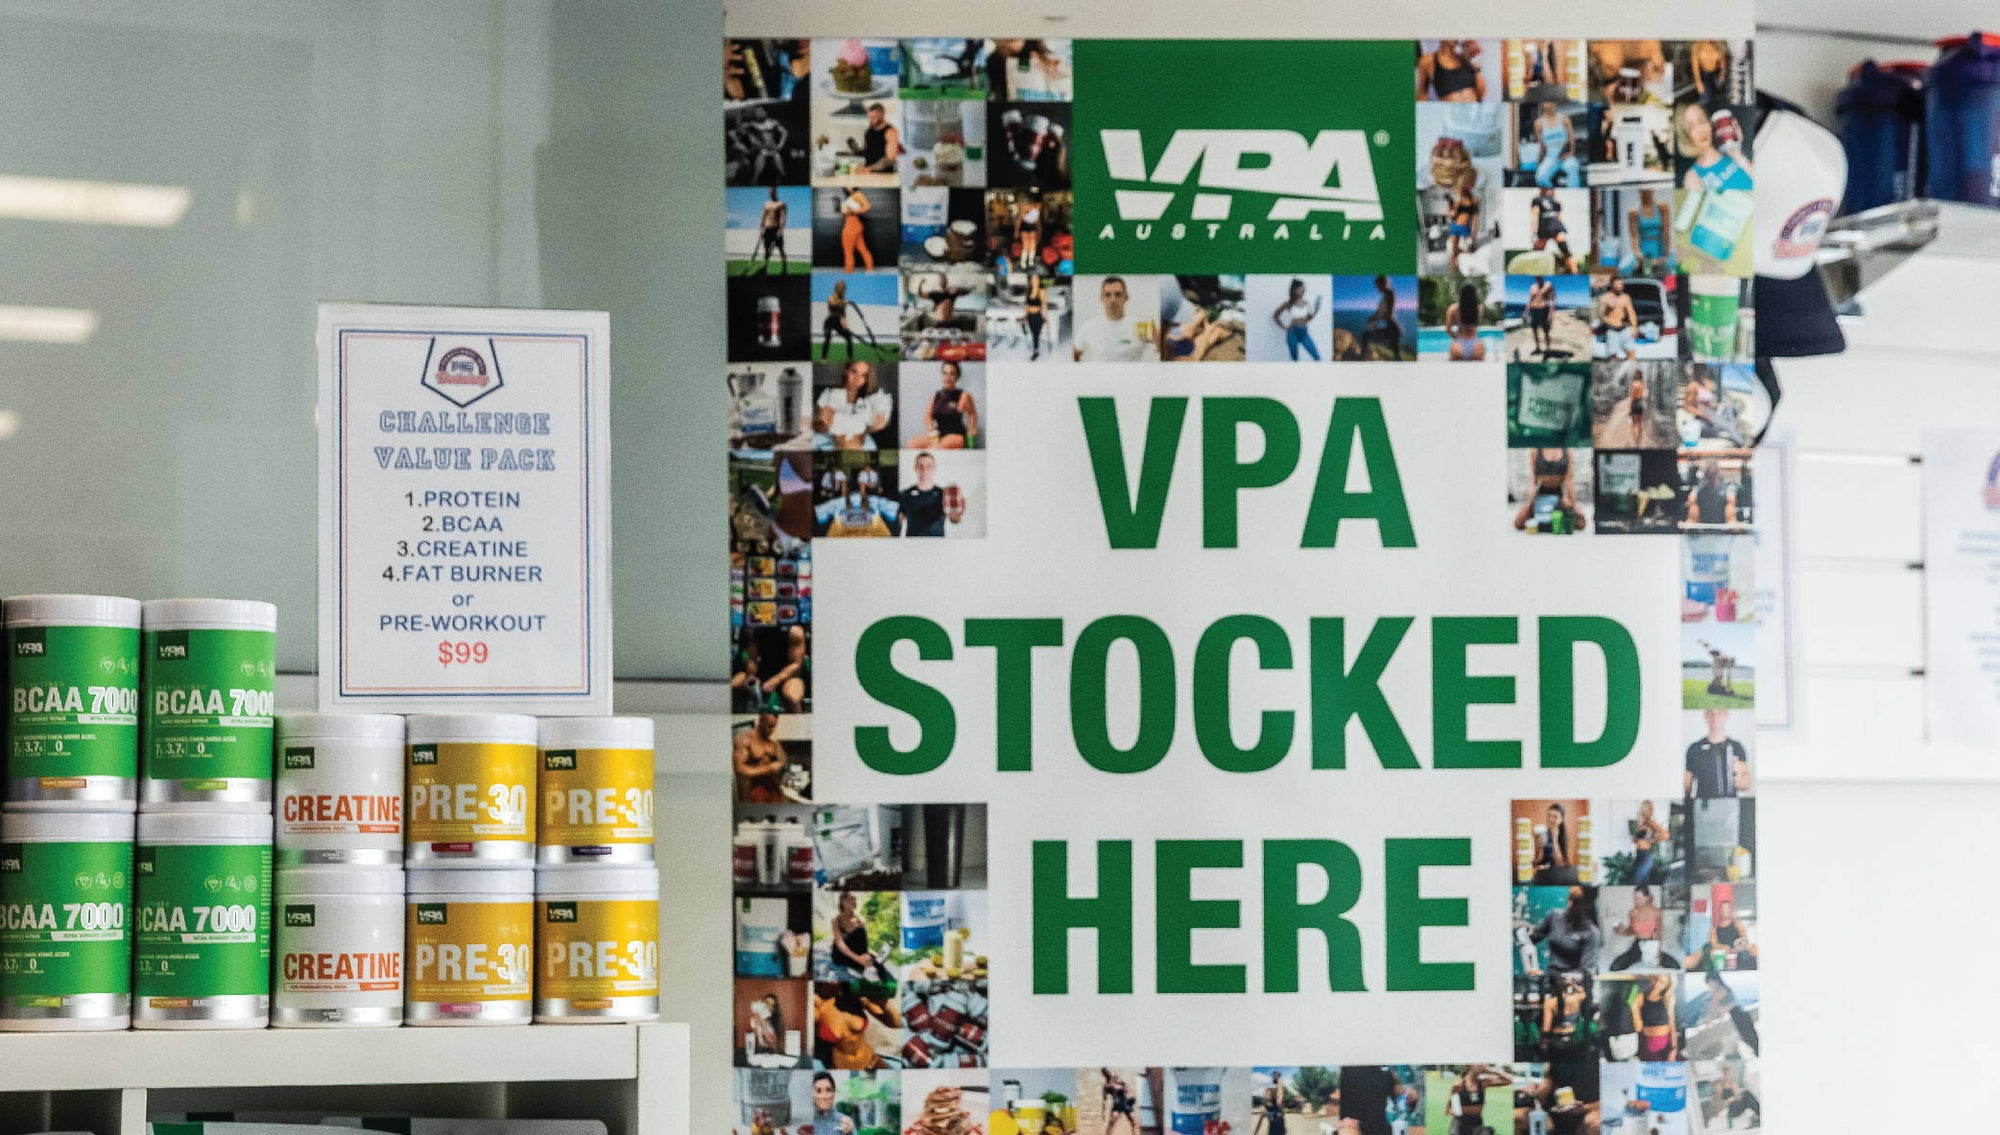 How to sell VPA supplements in your gym